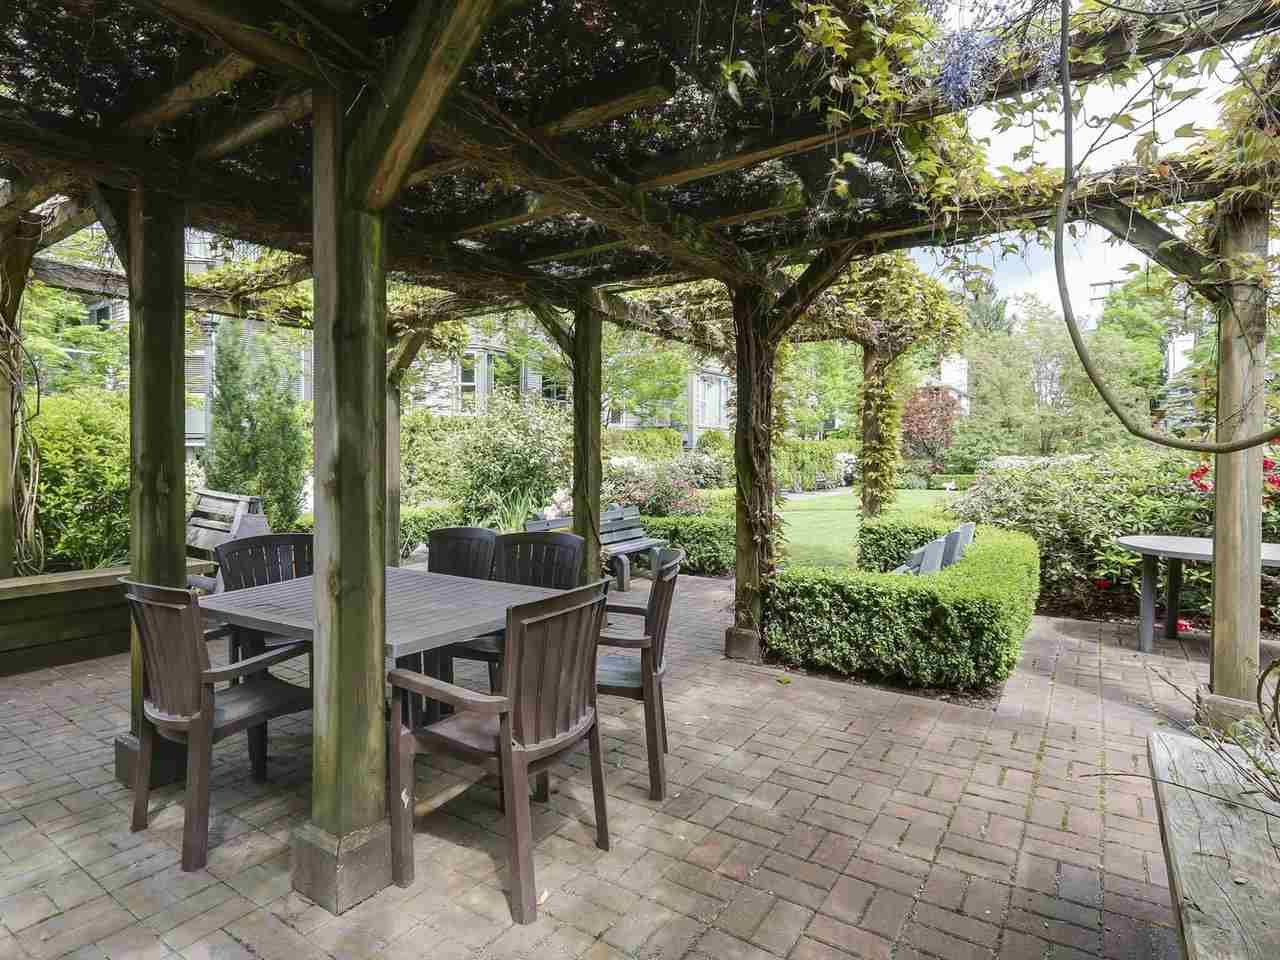 Photo 13: Photos: 305 225 E 19TH AVENUE in Vancouver: Main Condo for sale (Vancouver East)  : MLS®# R2173702